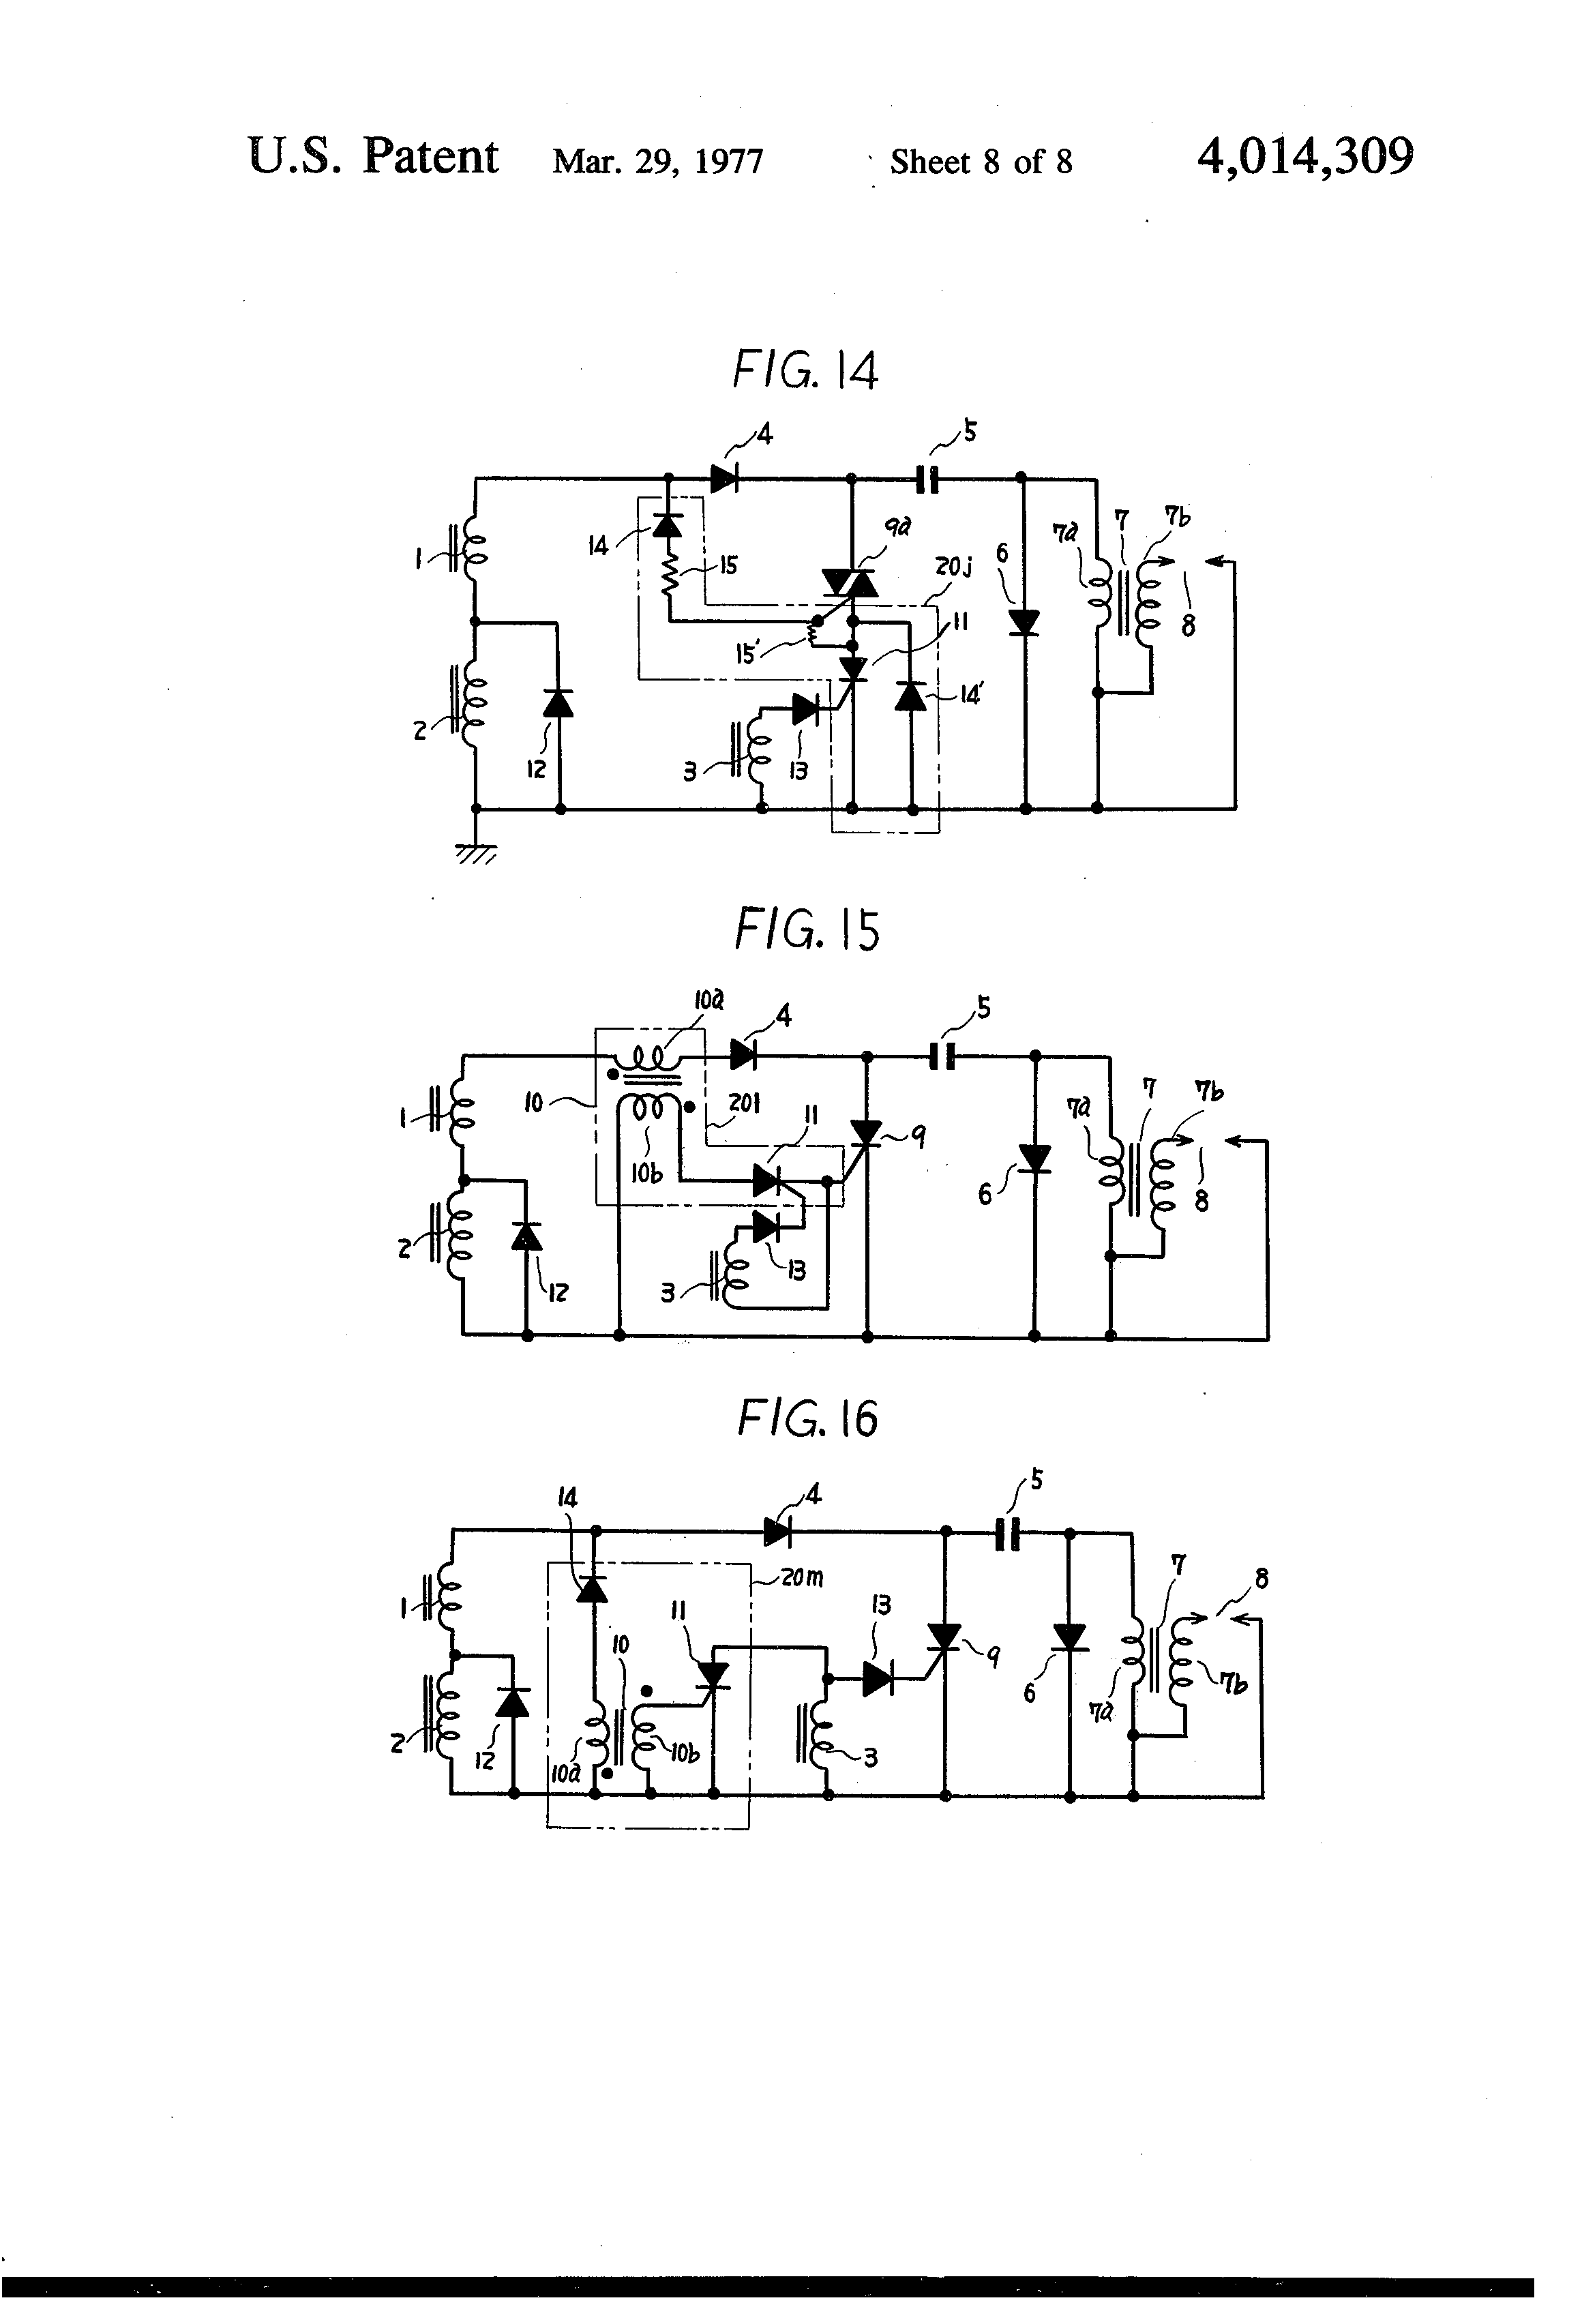 Ignition System Capacitor Function on Ignition Condenser Purpose